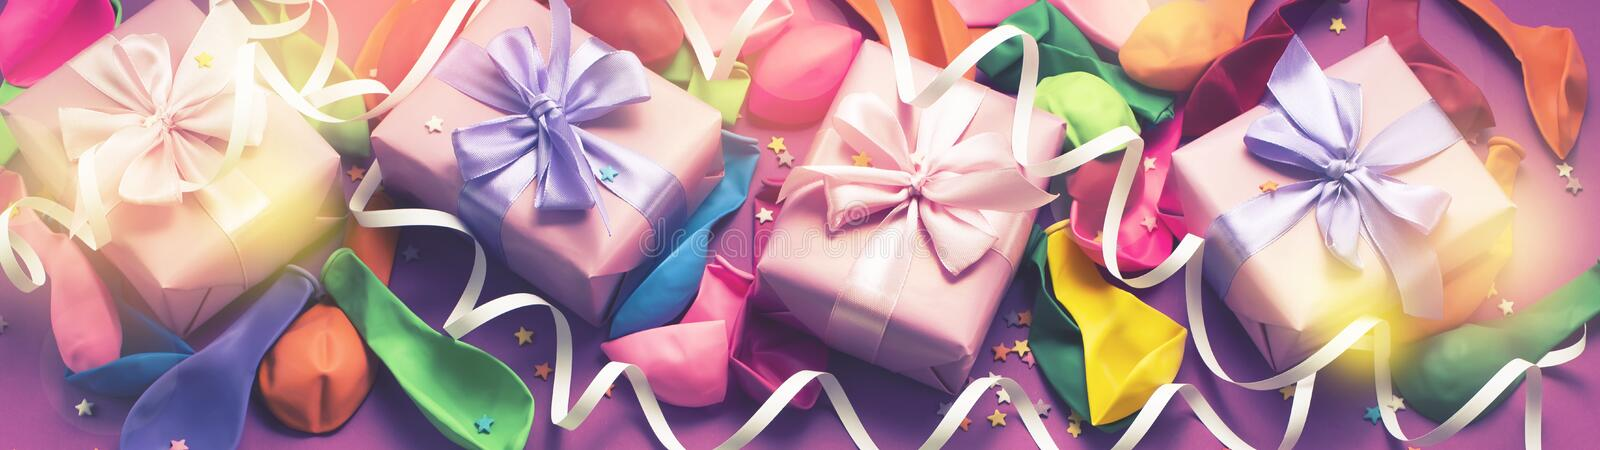 Banner Decorative box composition with gifts satin ribbon bow inflatable balls serpentine purple background A top view royalty free stock photo